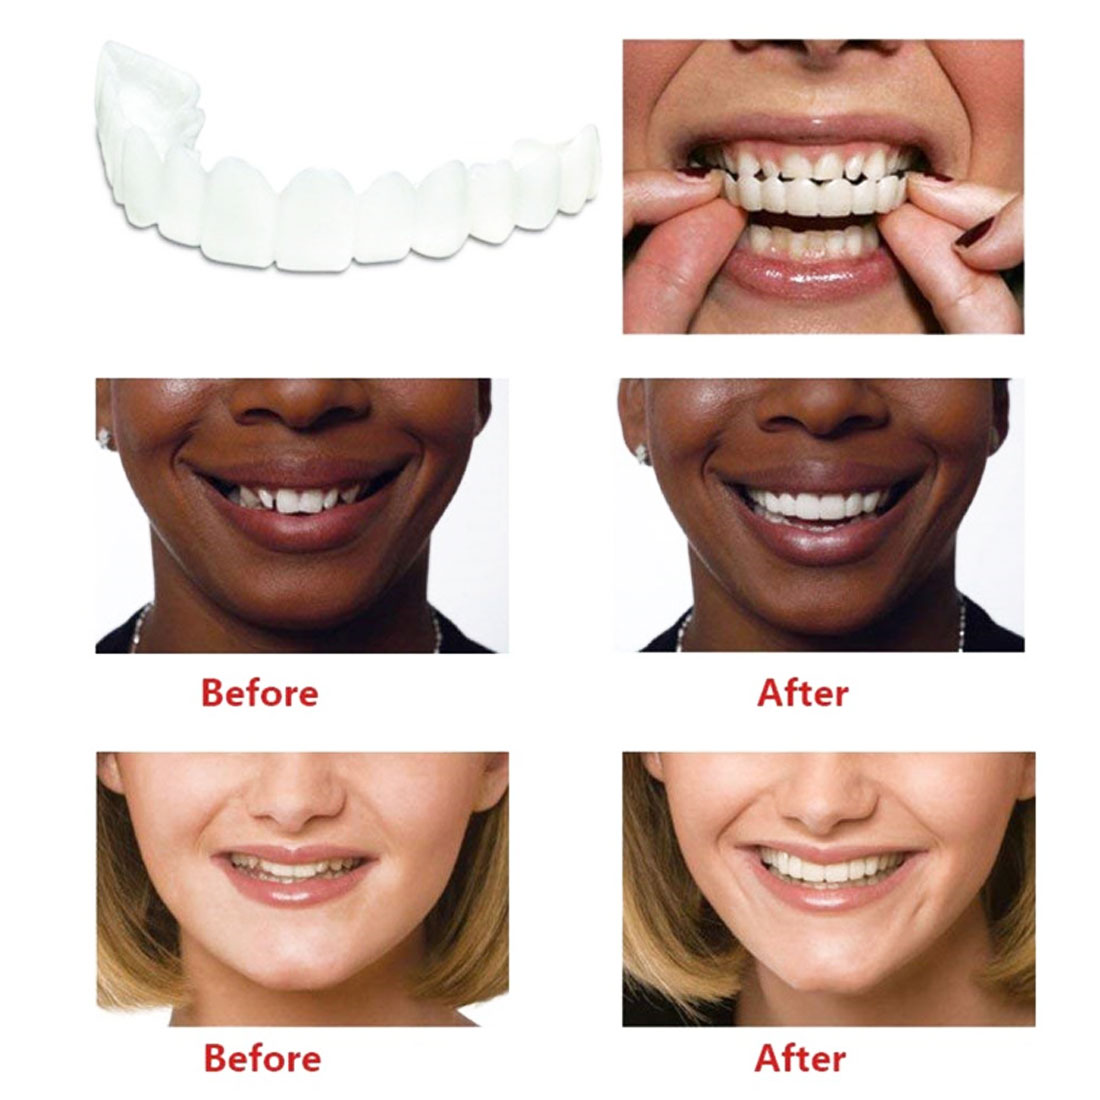 Image 5 - 5pcs Fit Dentes White Cover Denture Teeth Top Cosmetic bleaching Yellow Teeth Whitening Temporary Smile Comfort-in Teeth Whitening from Beauty & Health